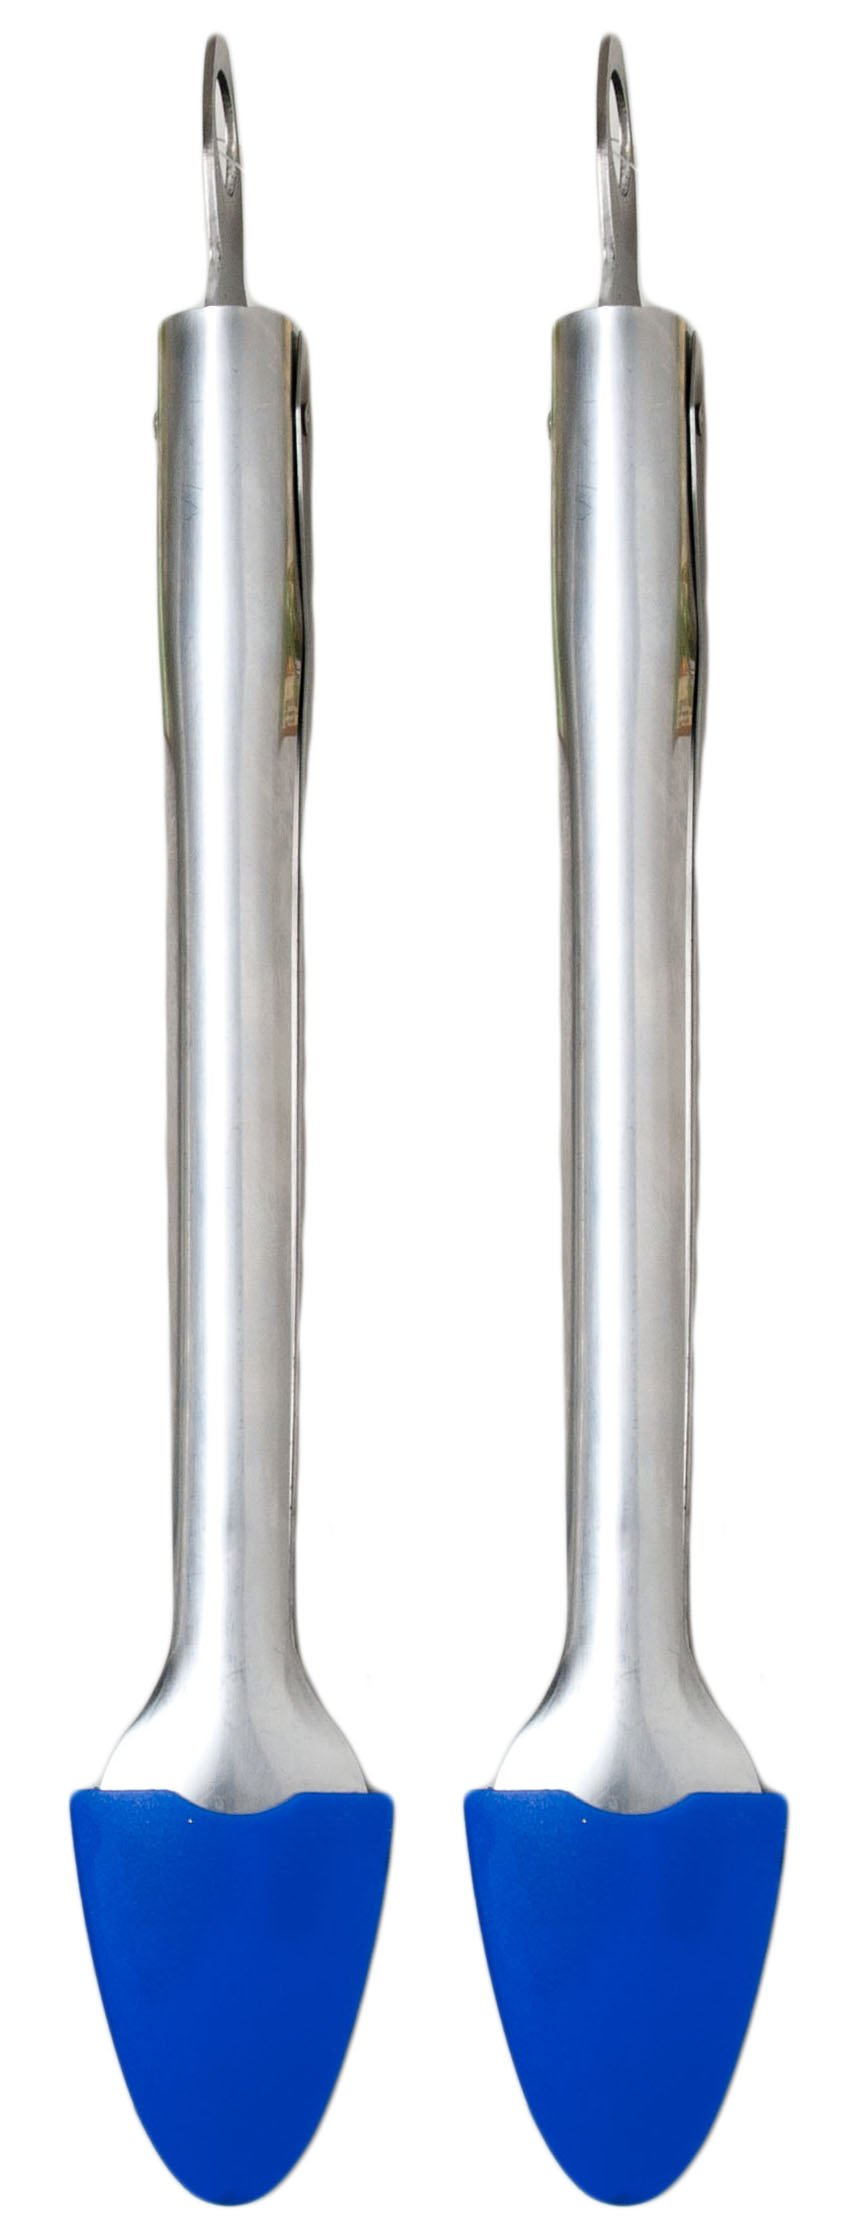 2 Stainless Steel Tongs with Blue Silicone Tips 12'' - Locking Tong (Blue) by Good Old Values